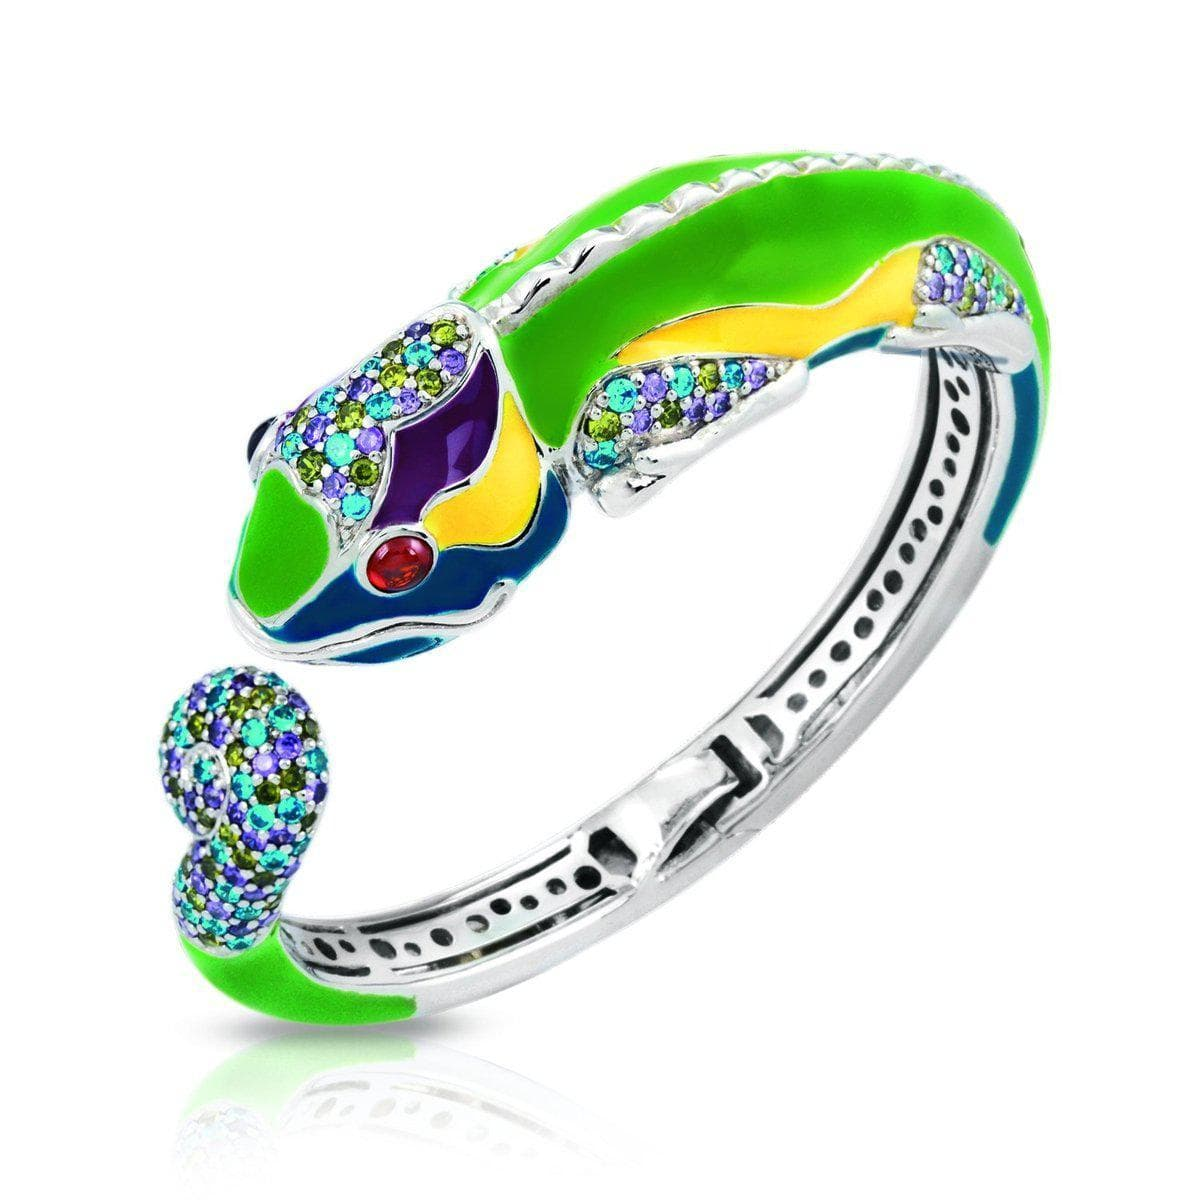 Chameleon Green Bangle-Belle Etoile-Renee Taylor Gallery